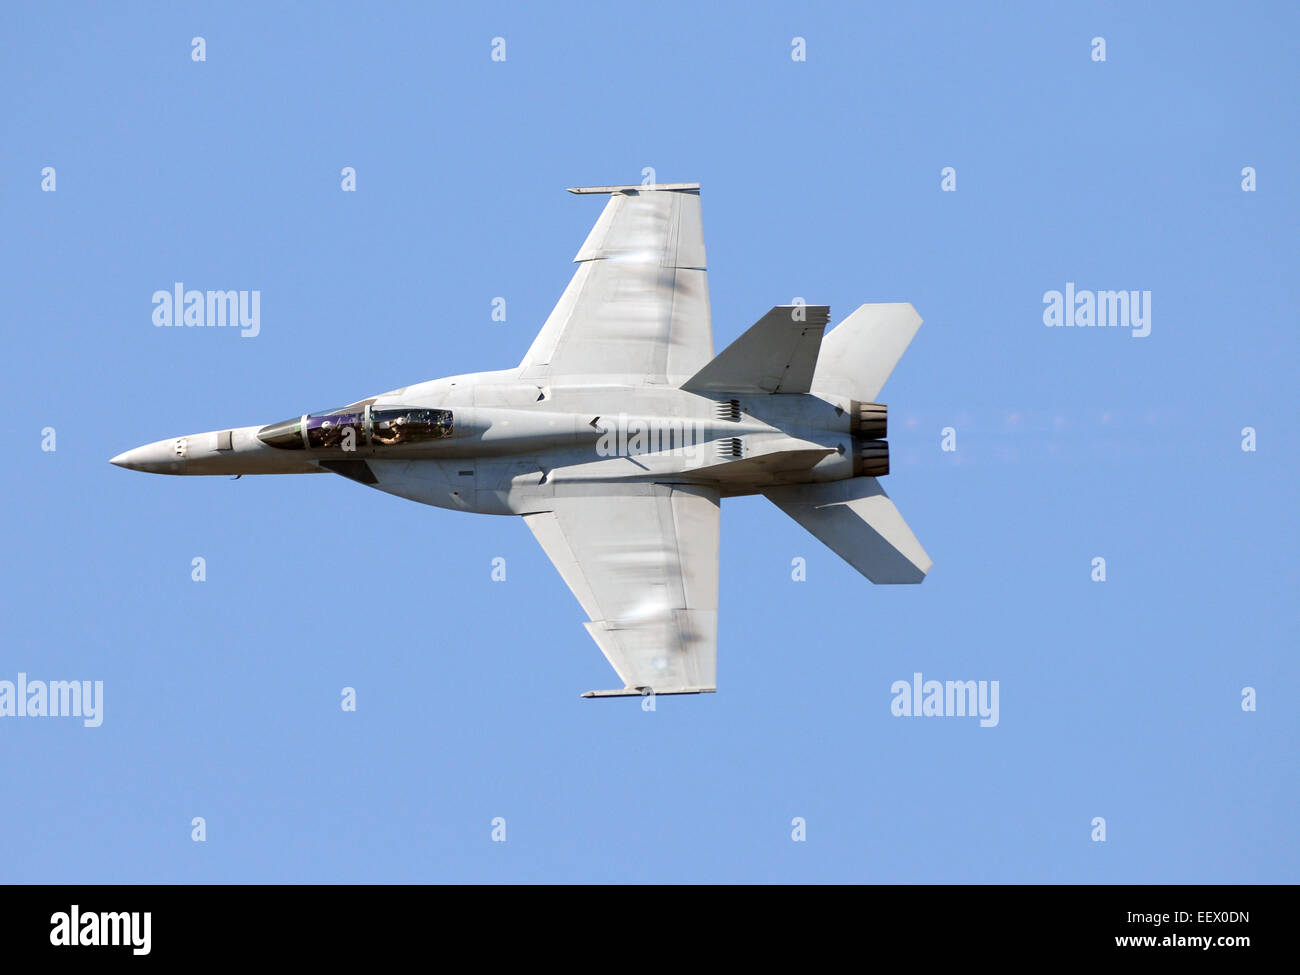 Modern US Navy jet in high speed flight F/A-18 Hornet - Stock Image